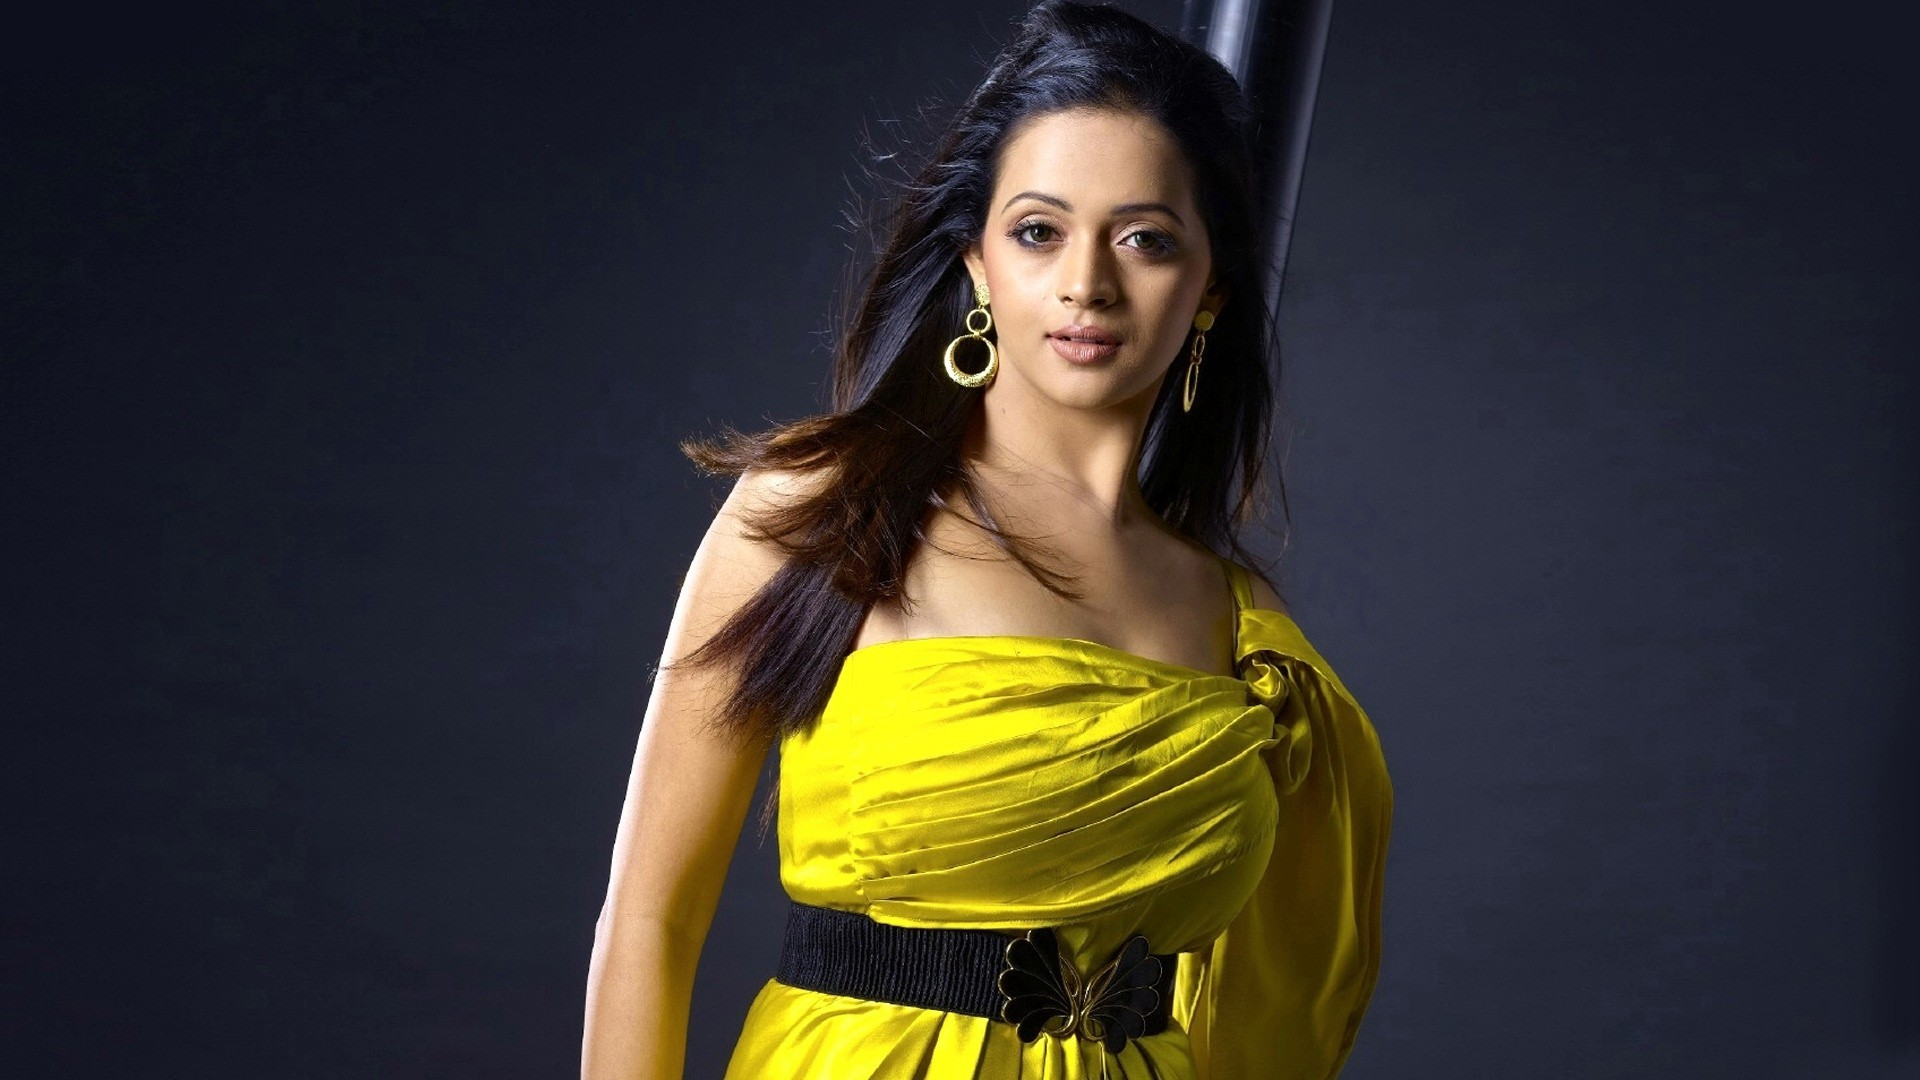 Tamil Actress Bhavana Photos: Bhavana Hot And Sexy Unseen Photos, Images